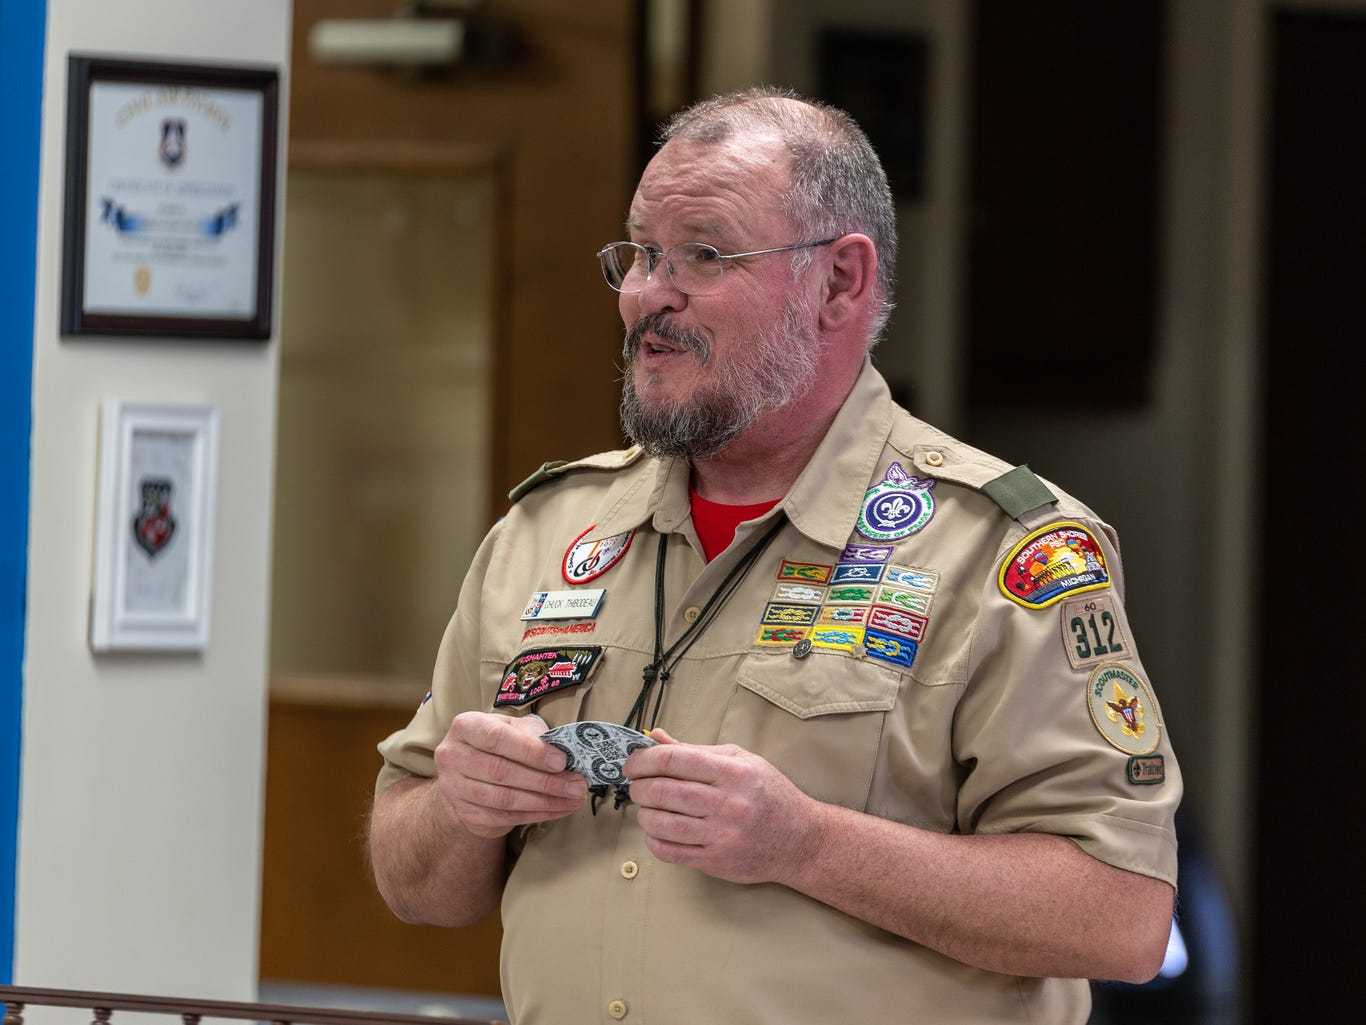 Chuck Thibodeau explains the new badges the girls will receive as Scouts on Monday Feb. 18, 2019.